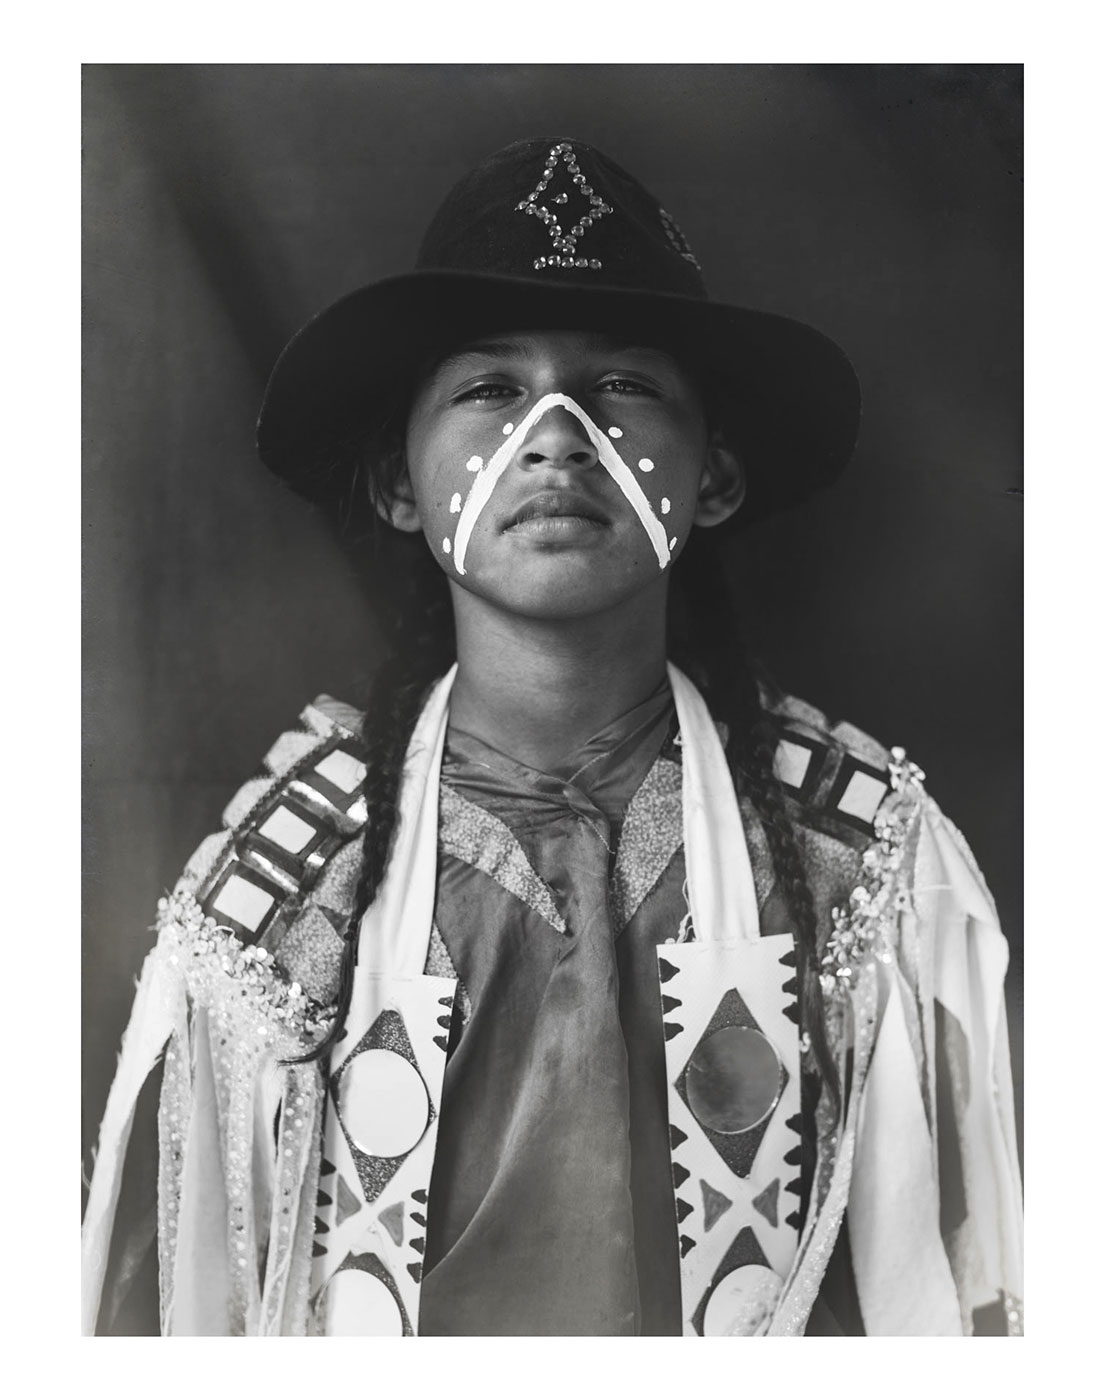 lakota-boy-wacipi-traditional-dance-portrait